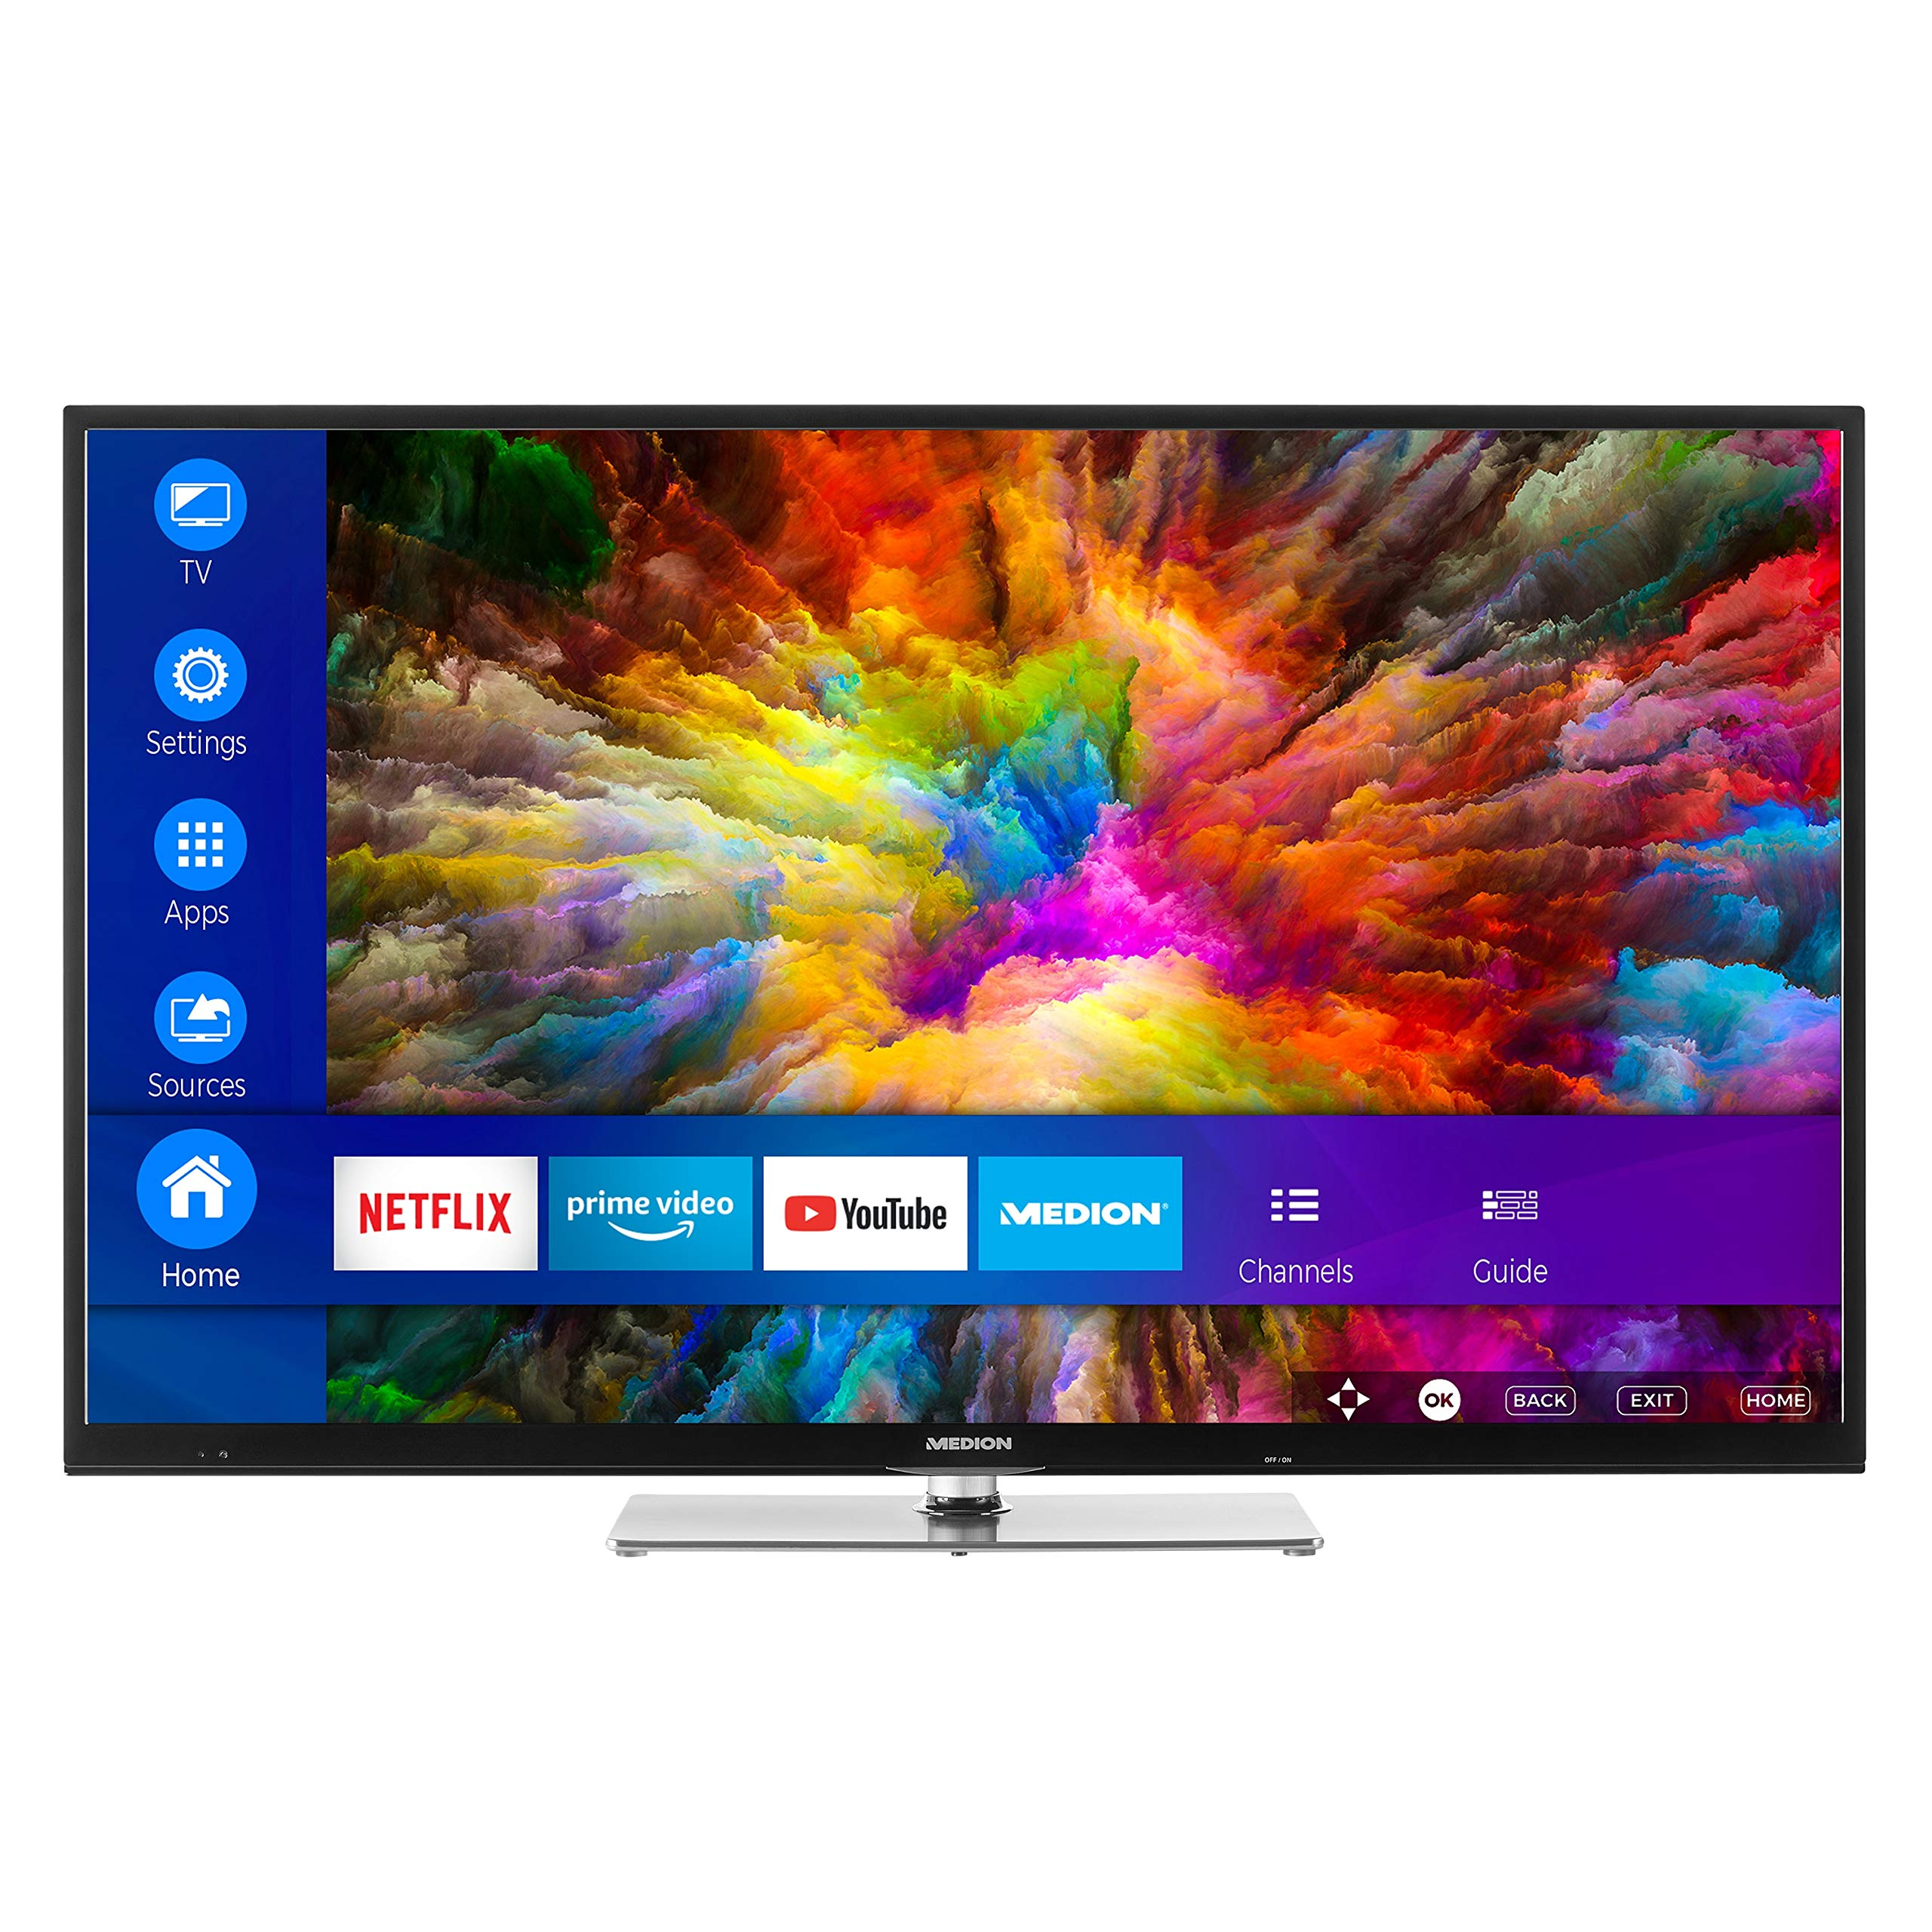 MEDION Serie X (UHD) Televisor (Smart TV, 4K Ultra HD, Dolby Vision HDR, sintonizador Triple, DVB-T2 HD, Netflix App, Prime Video, PVR, Bluetooth): Amazon.es: Electrónica